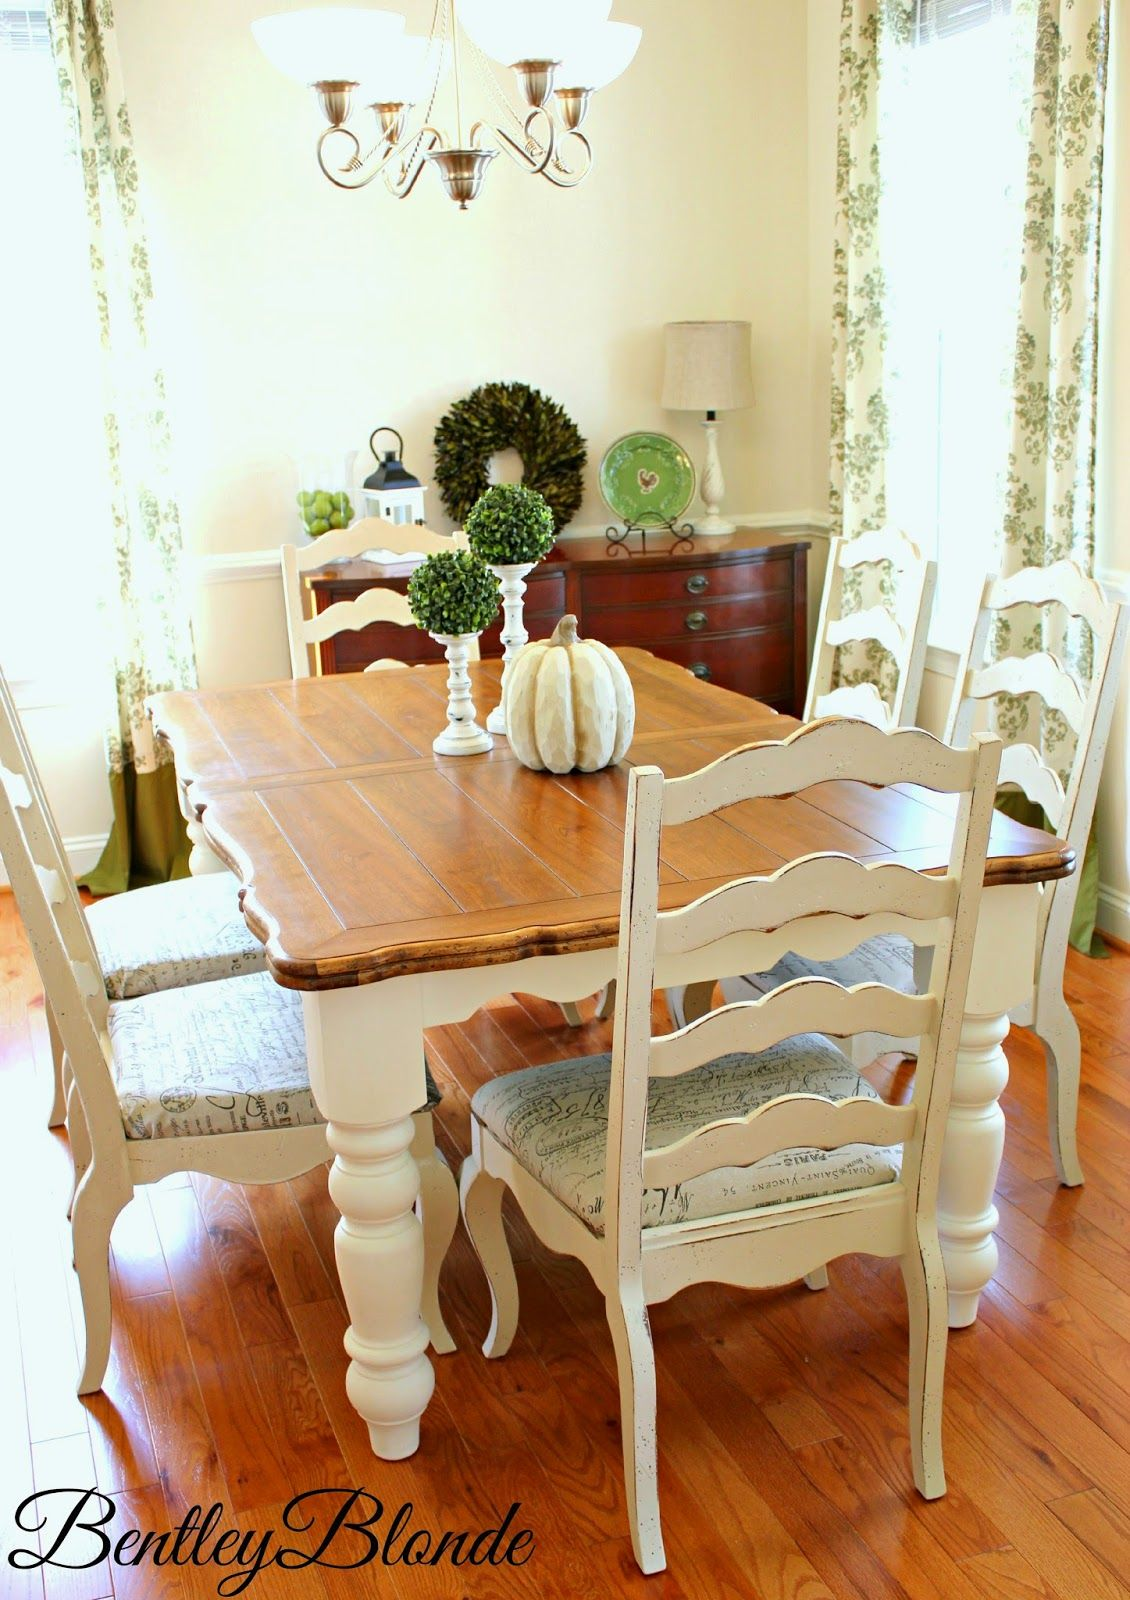 50 Ways To Reimagine Your Dream Dining Spot  Diy Farmhouse Table New Chalk Paint Dining Room Chairs Decorating Inspiration